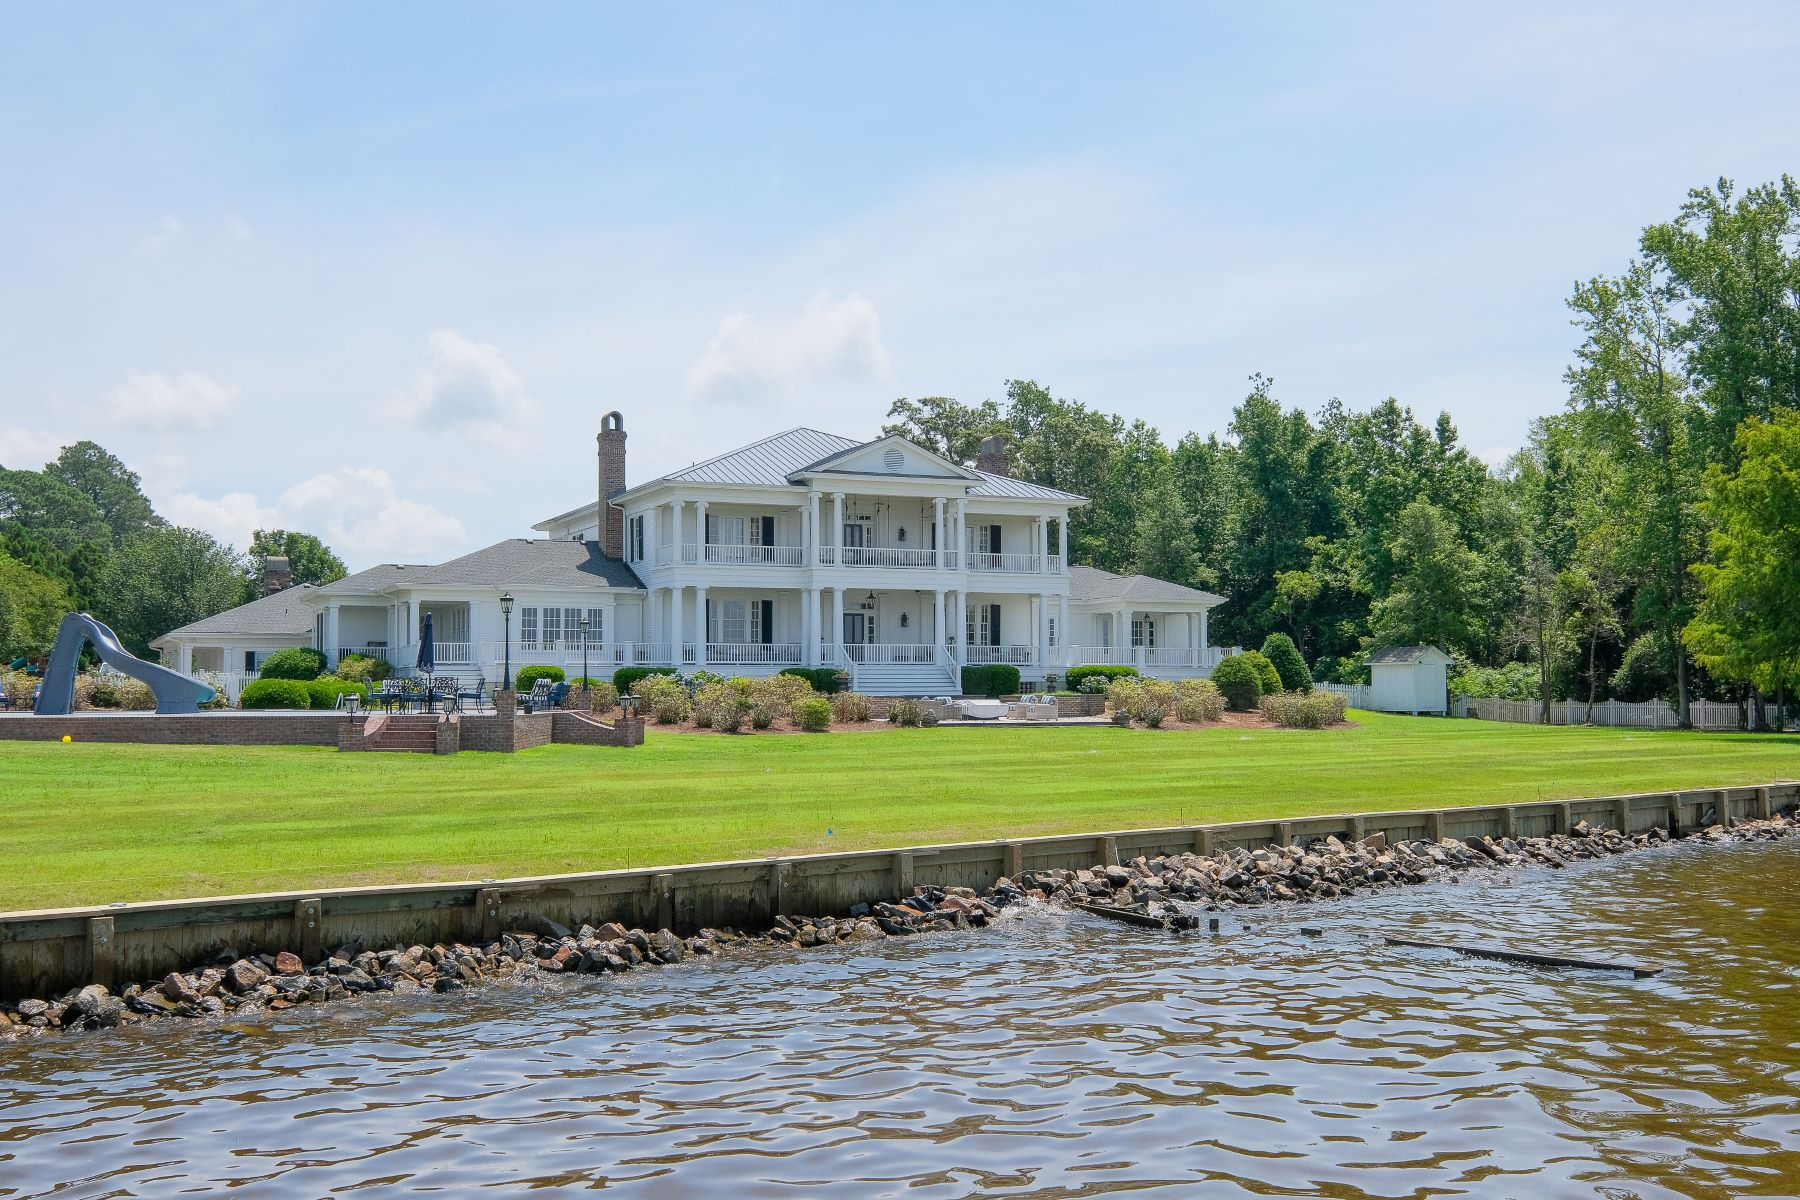 Single Family Homes for Active at UNPARALLELED WATERFRONT ESTATE 210 Blair Court Edenton, North Carolina 27932 United States